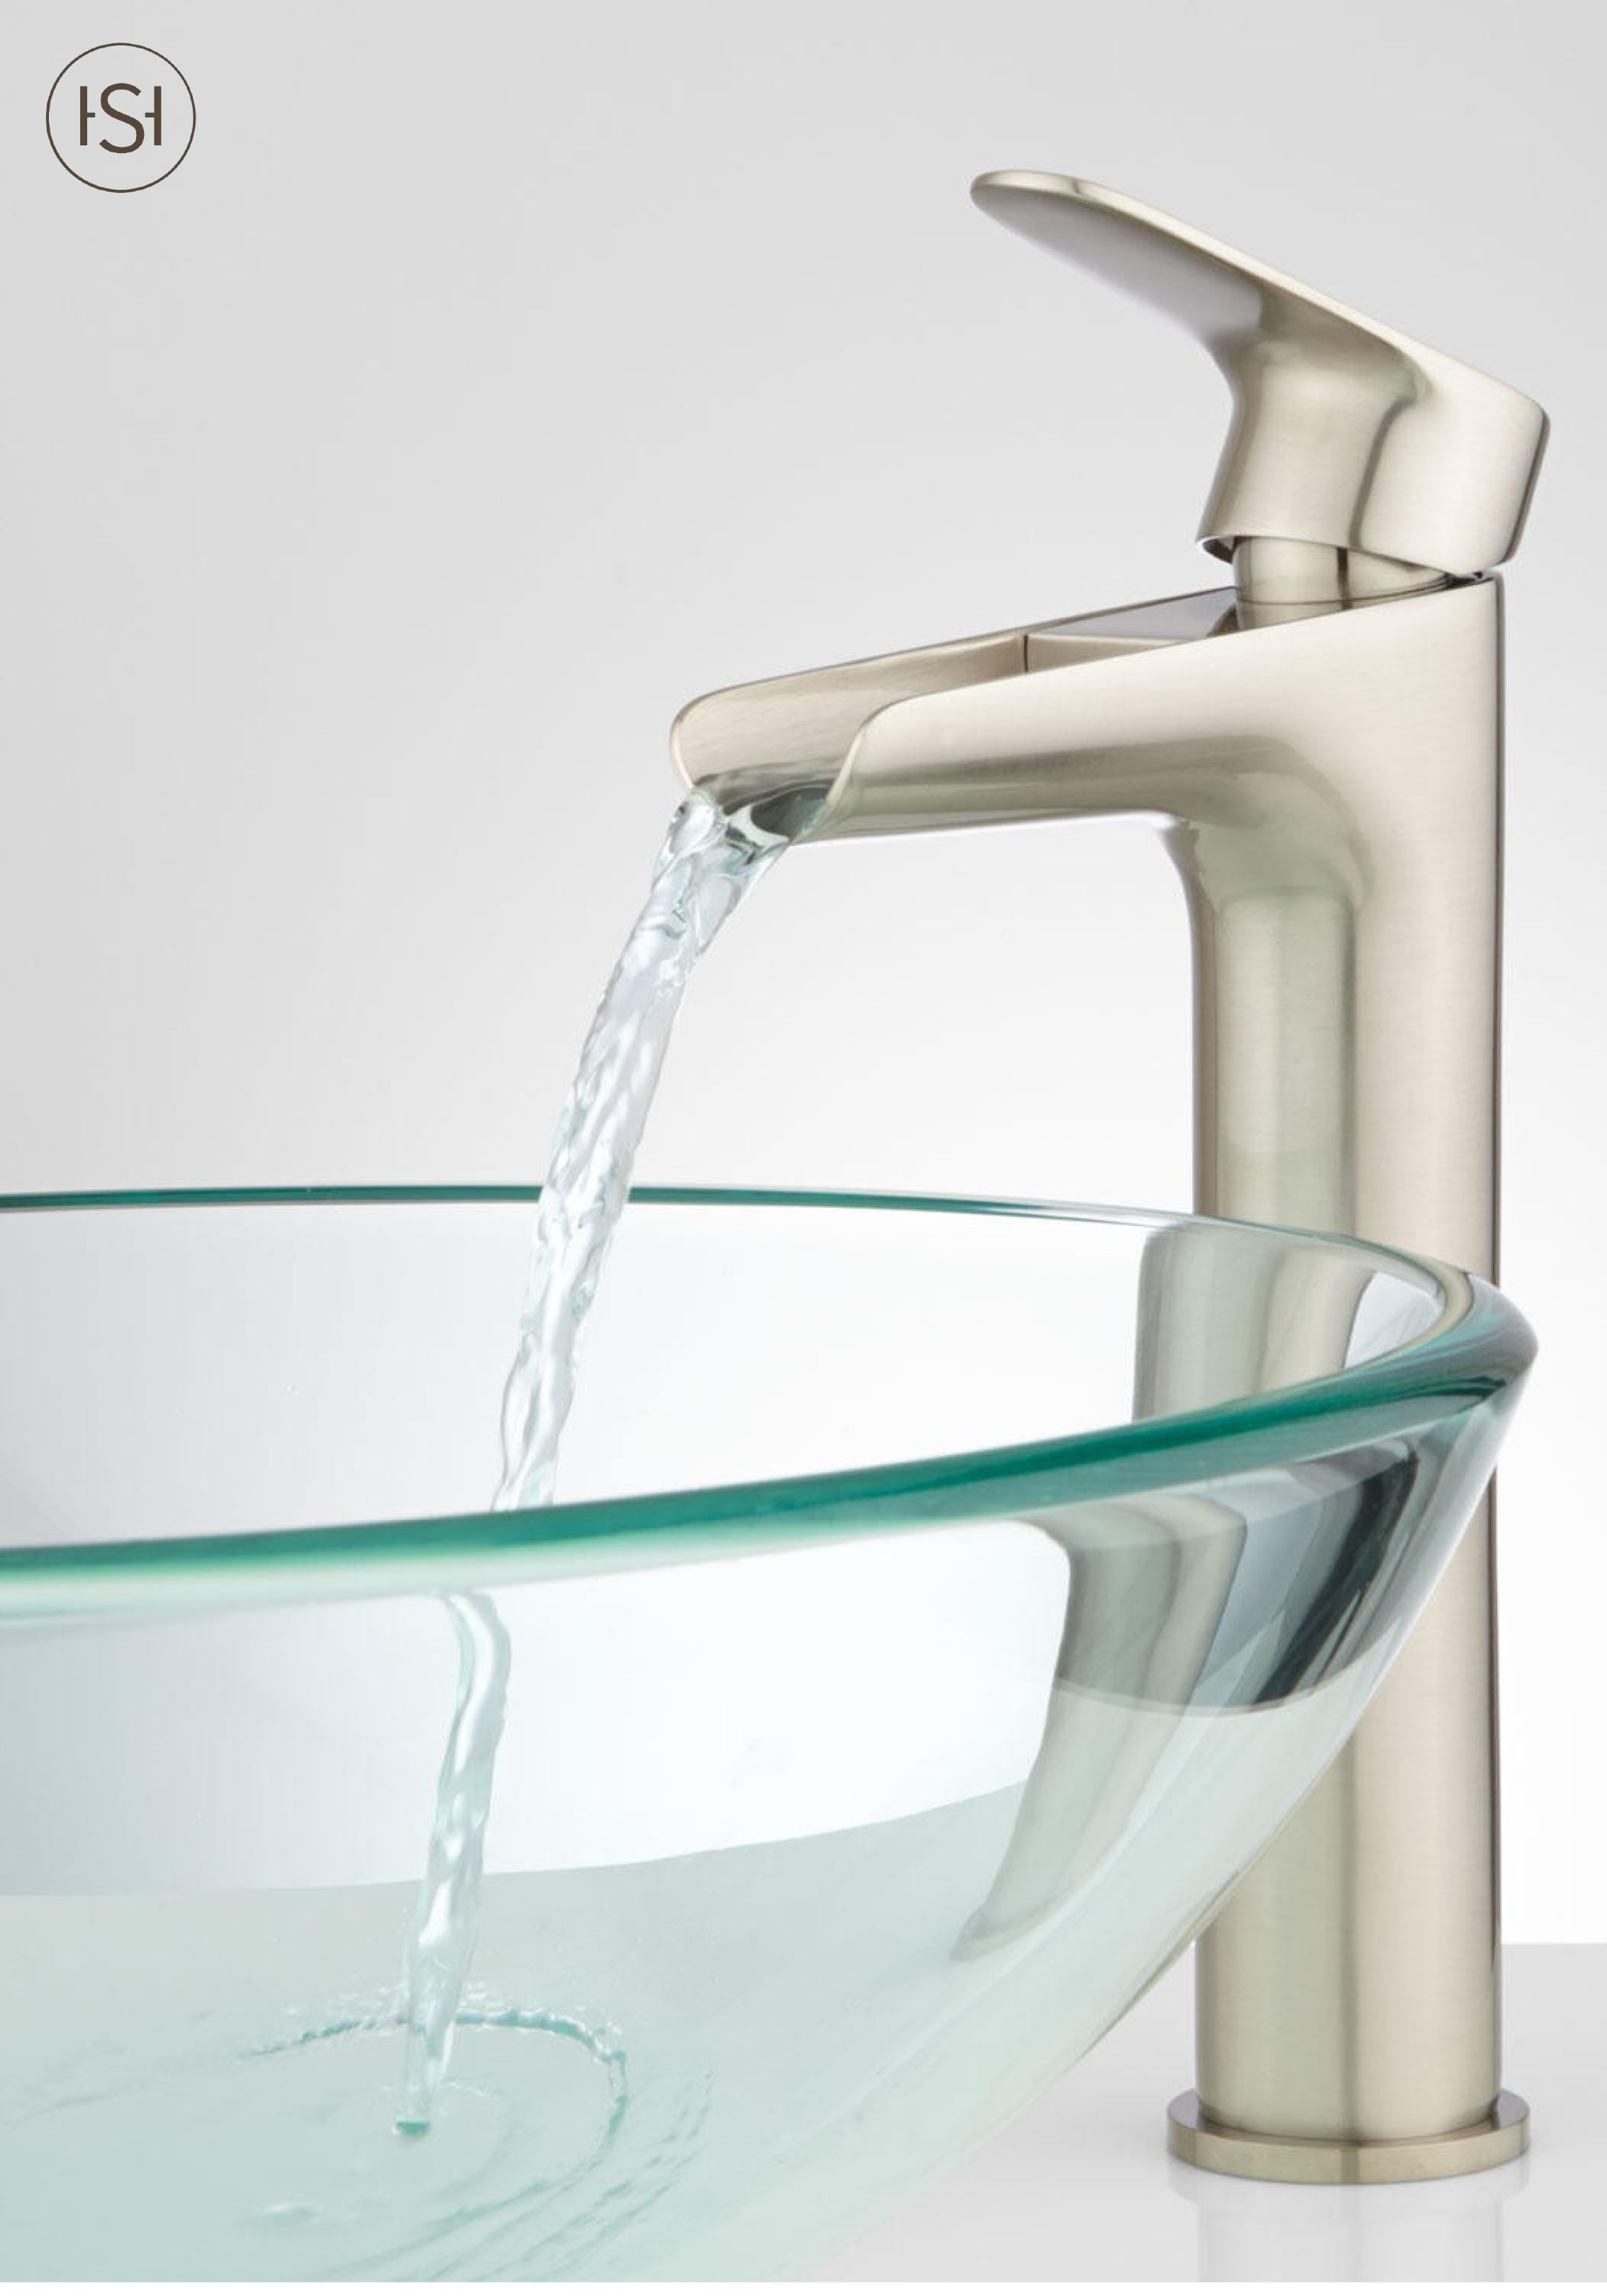 Enhance The Atmosphere Of Your Bathroom With A Vessel Sink Faucet Smooth Spout Will Awaken Hiness In Home Pair Gl Bowl For